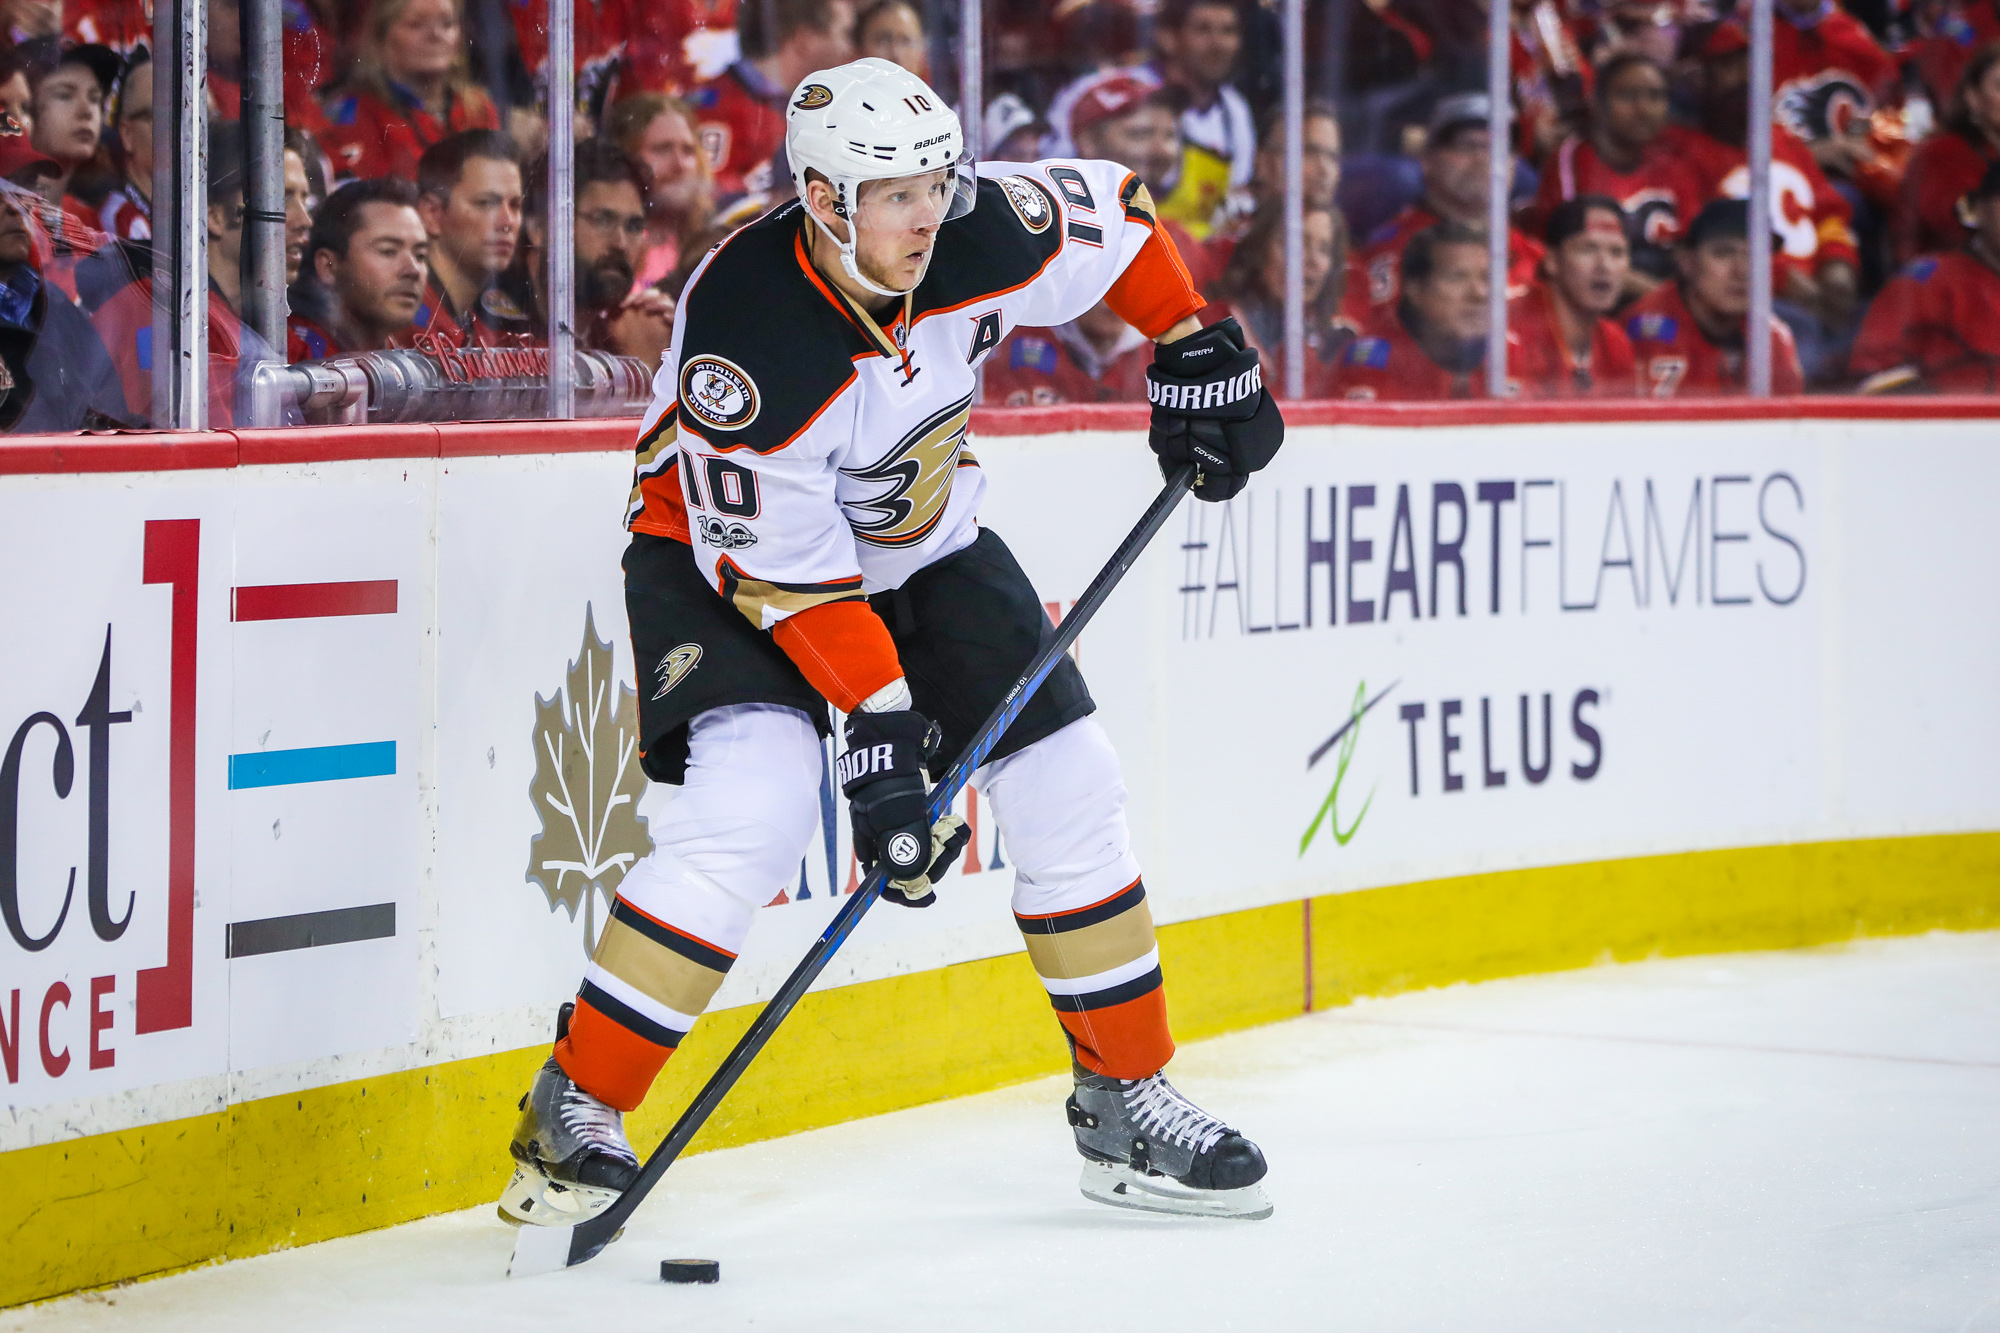 Anaheim Ducks: Corey Perry Needs to be Better in Game 3